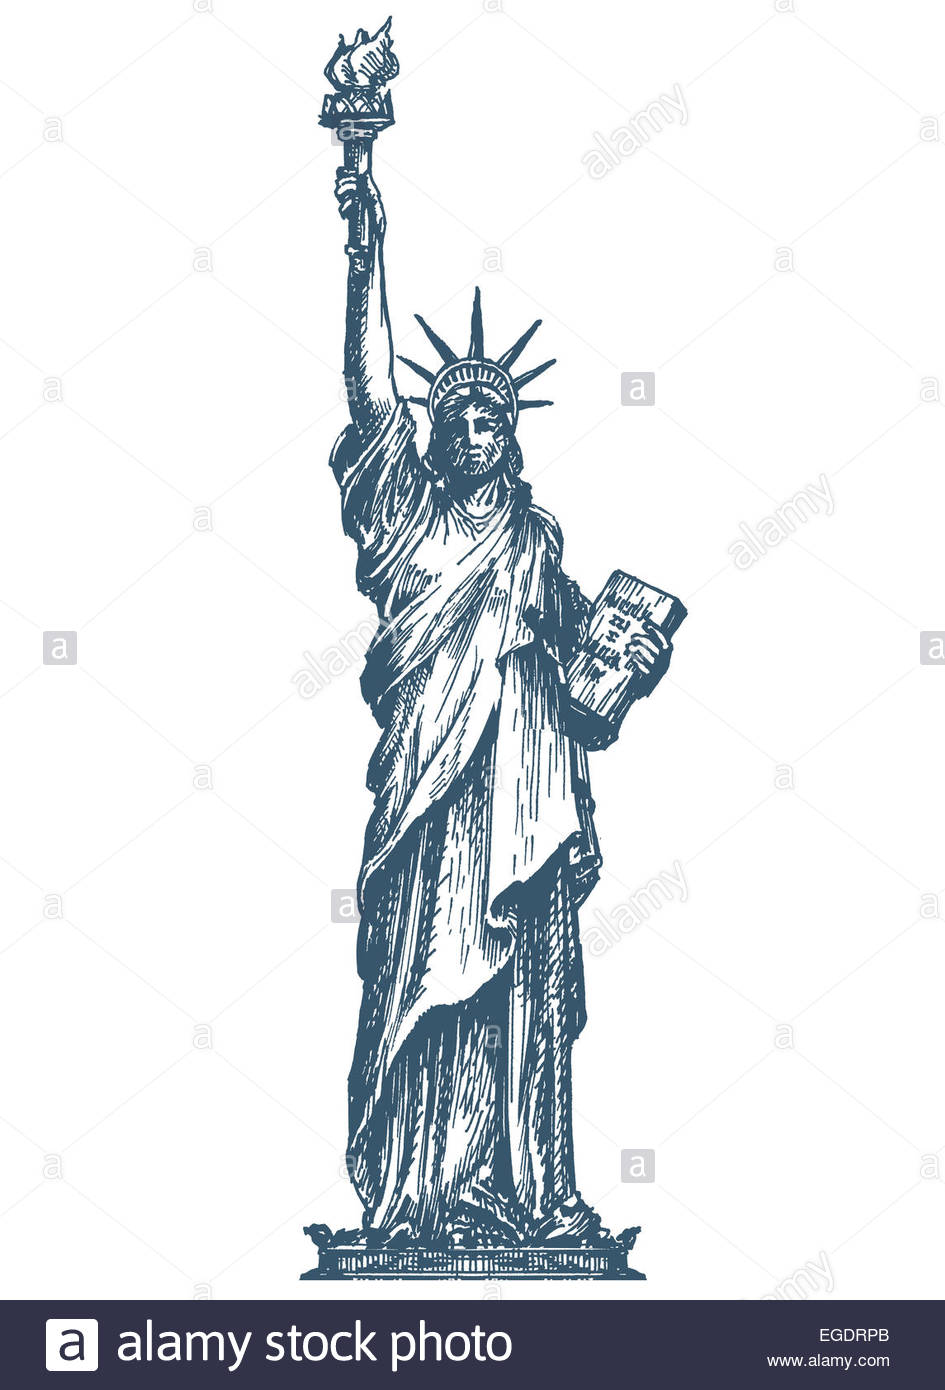 945x1390 Usa Logo Design Template. United States Or Statue Of Liberty